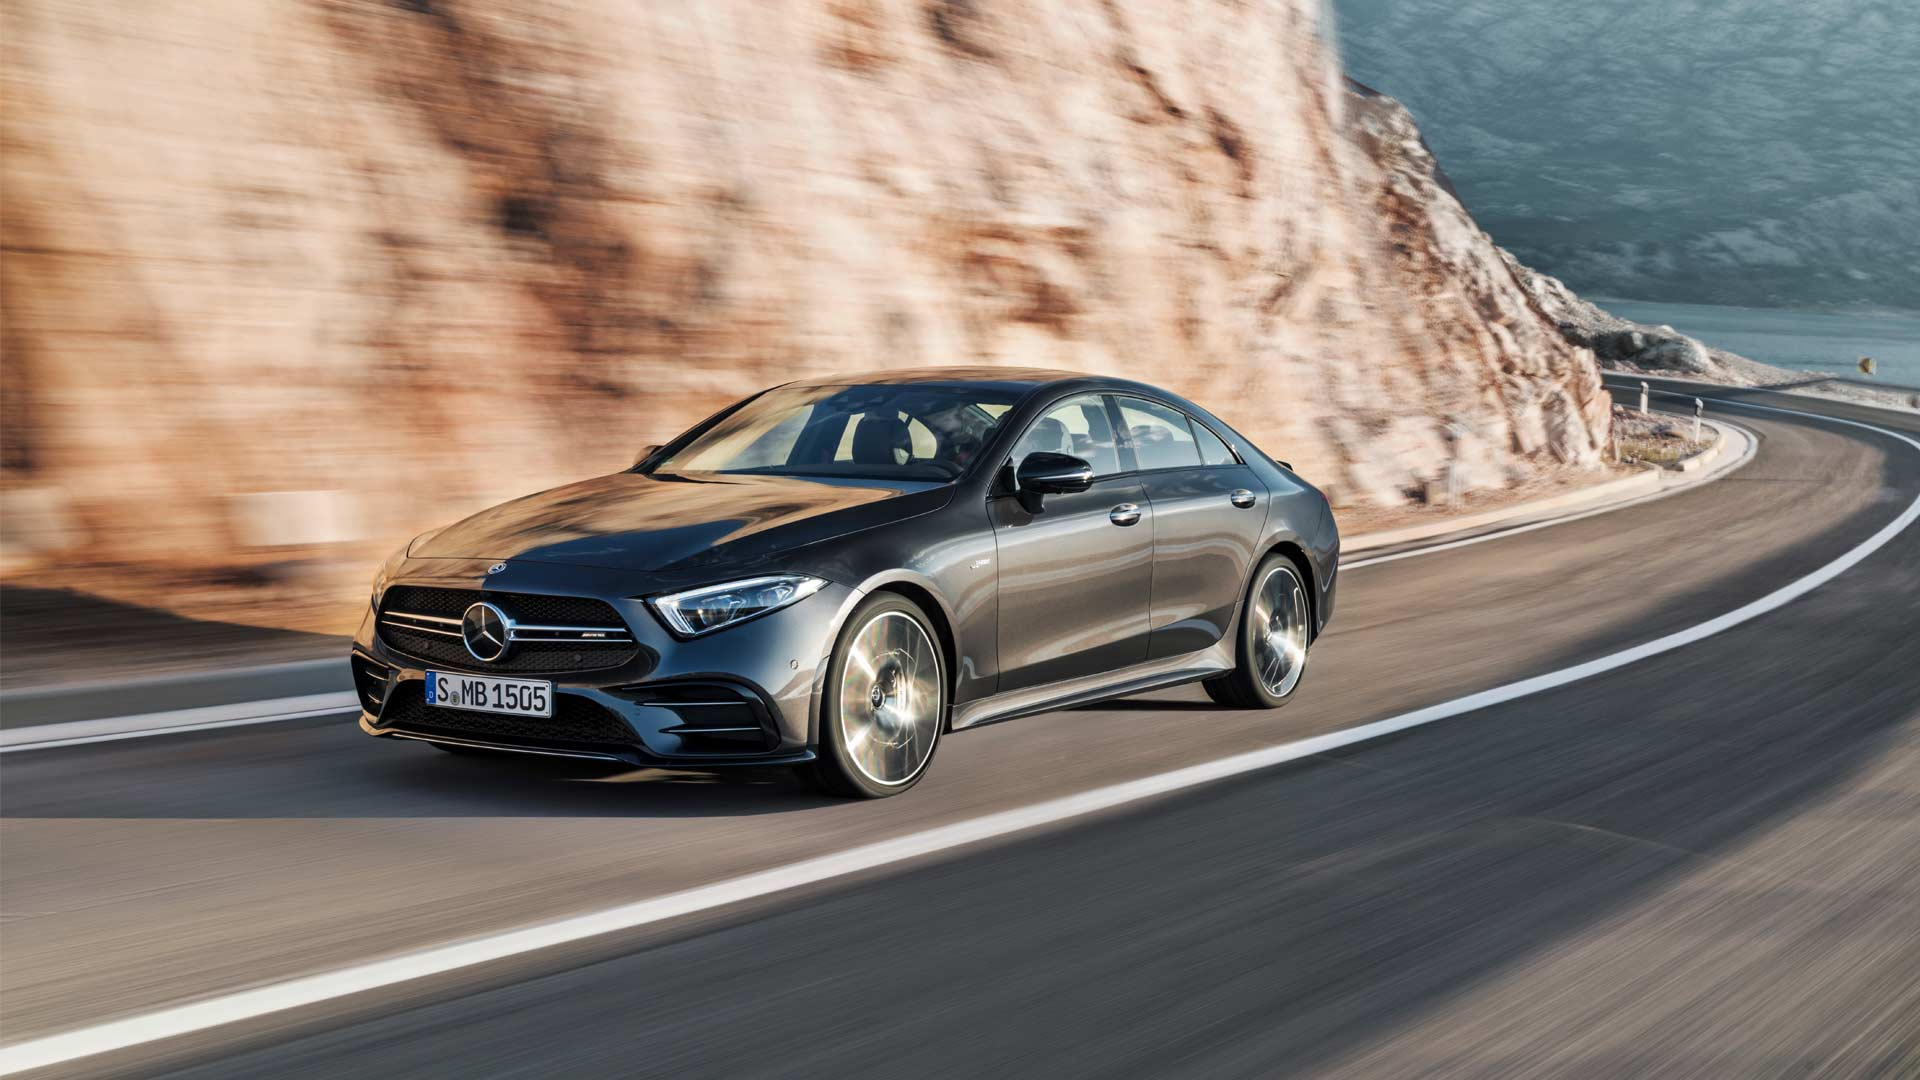 mercedes amg 53 series models unveiled cls e coupe and cabriolet autodevot. Black Bedroom Furniture Sets. Home Design Ideas